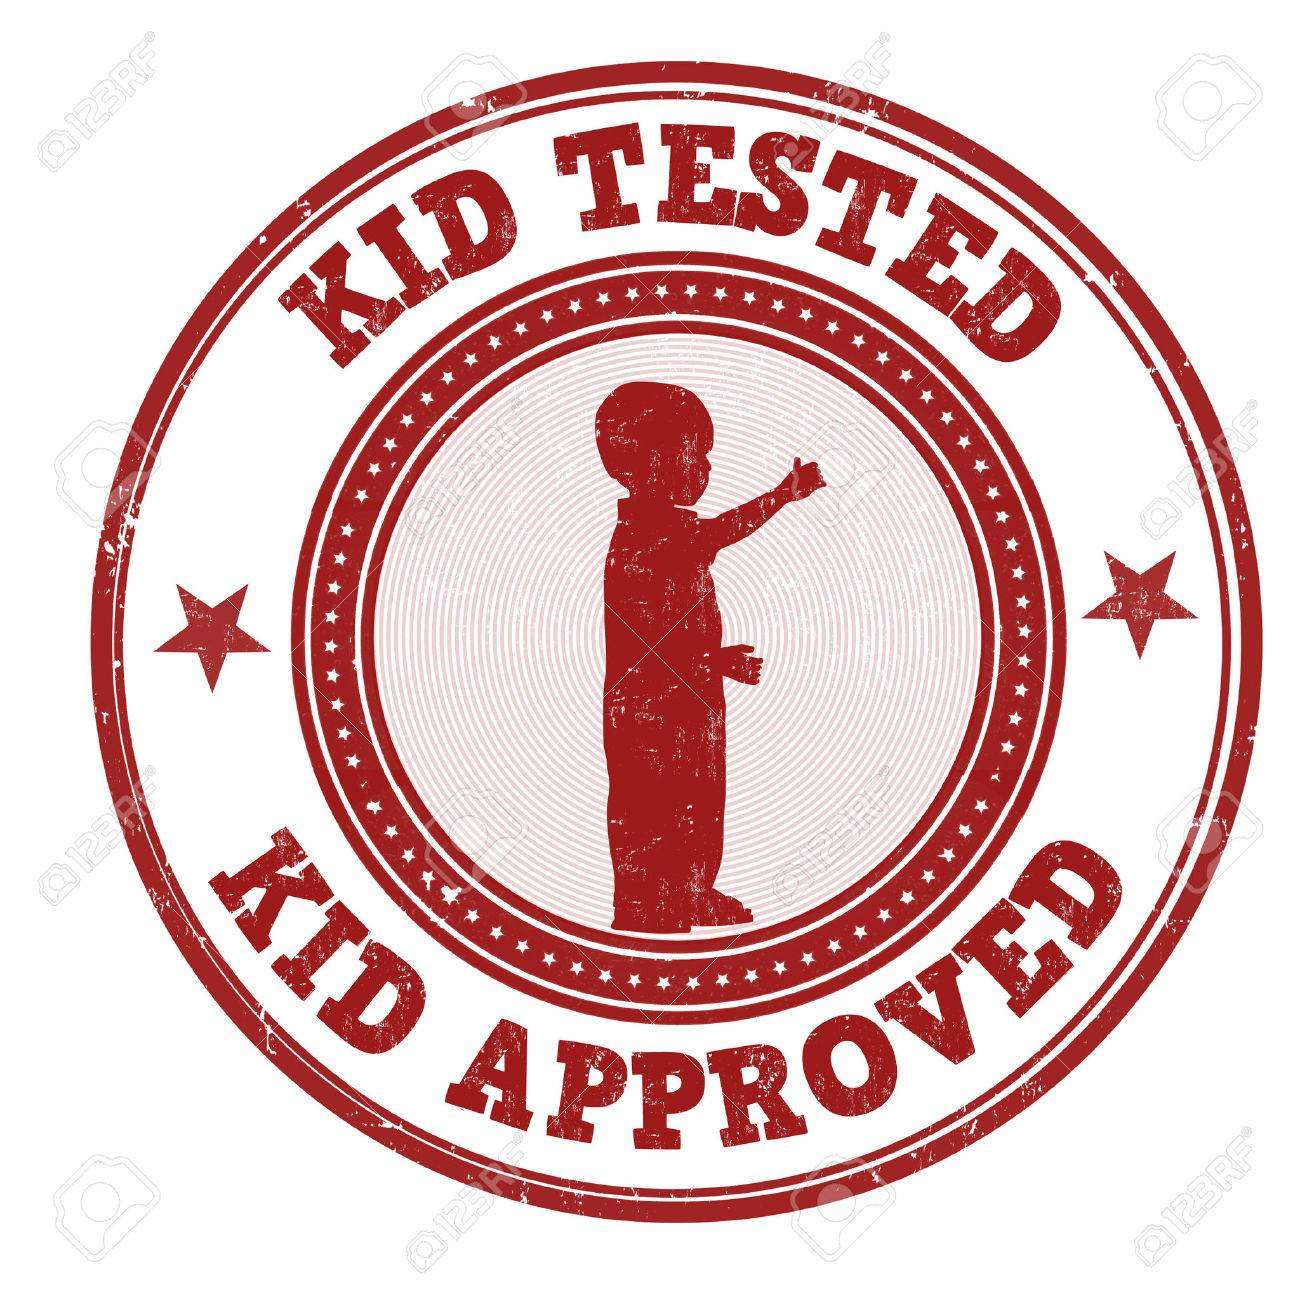 Kid Tested And Approved Grunge Rubber Stamp On White Background Vector Illustration Stock